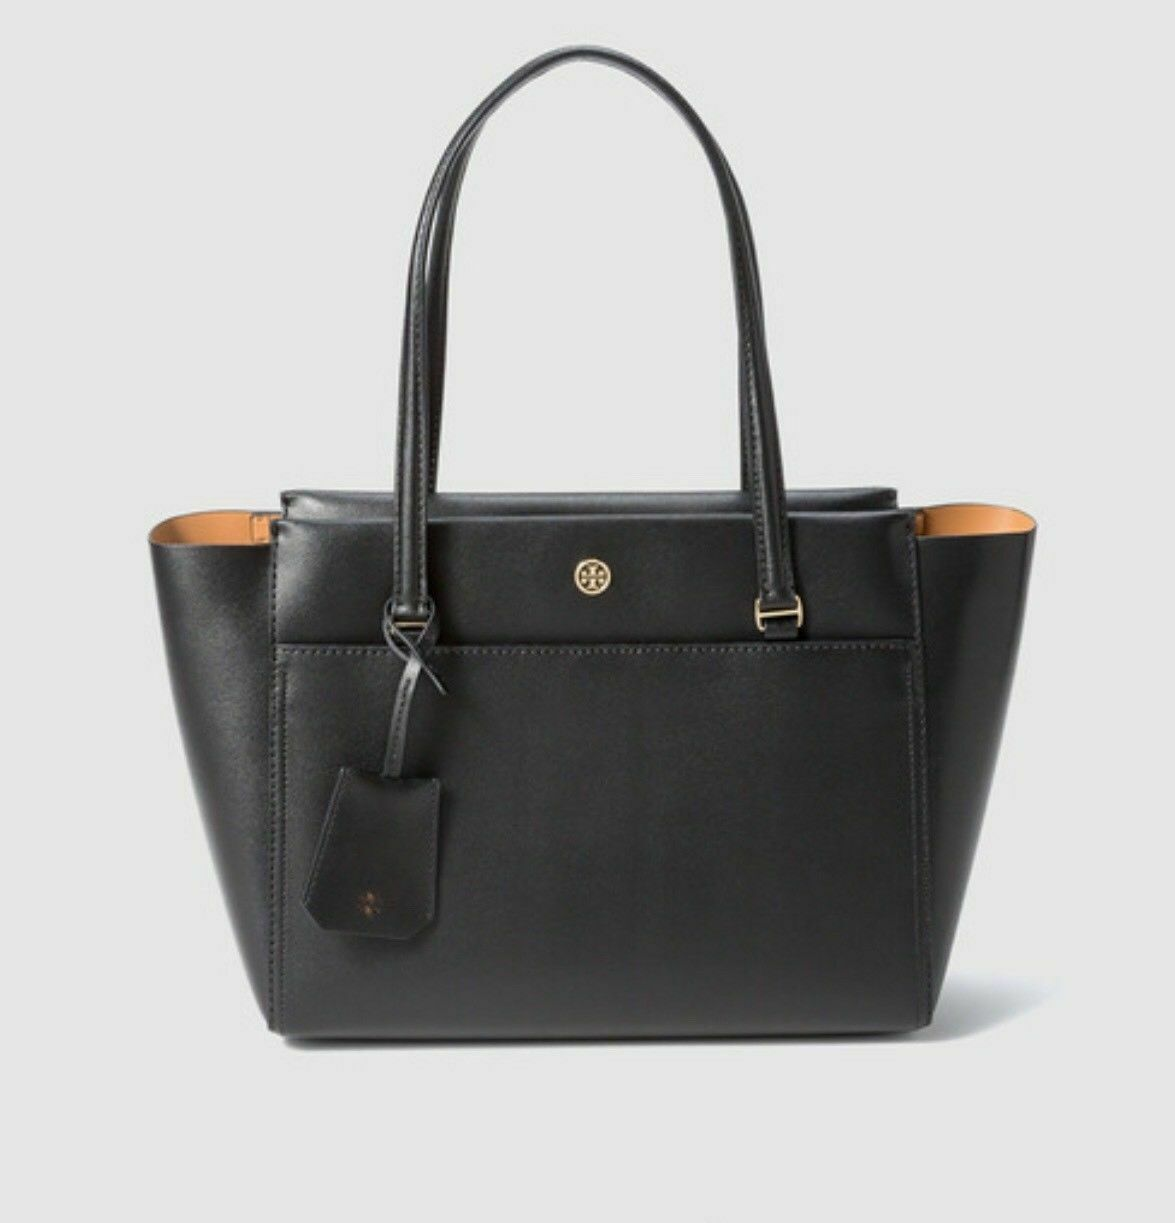 Primary image for Tory Burch Small Parker Tote